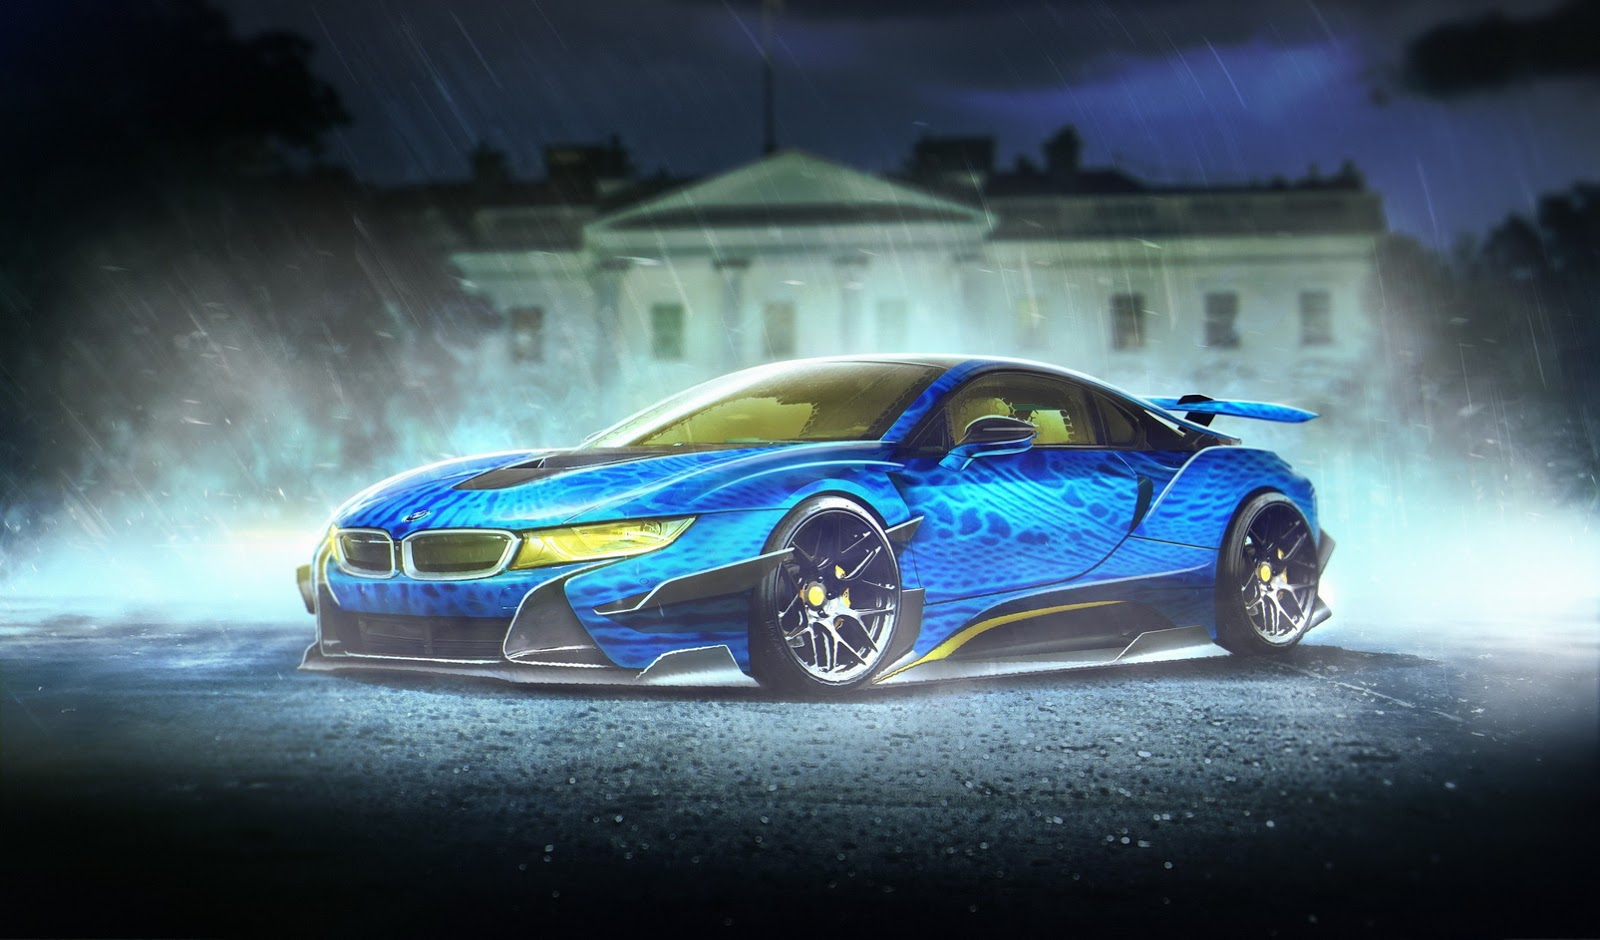 7 Cars Get Mutant Makeovers In Time For New X Men Movie